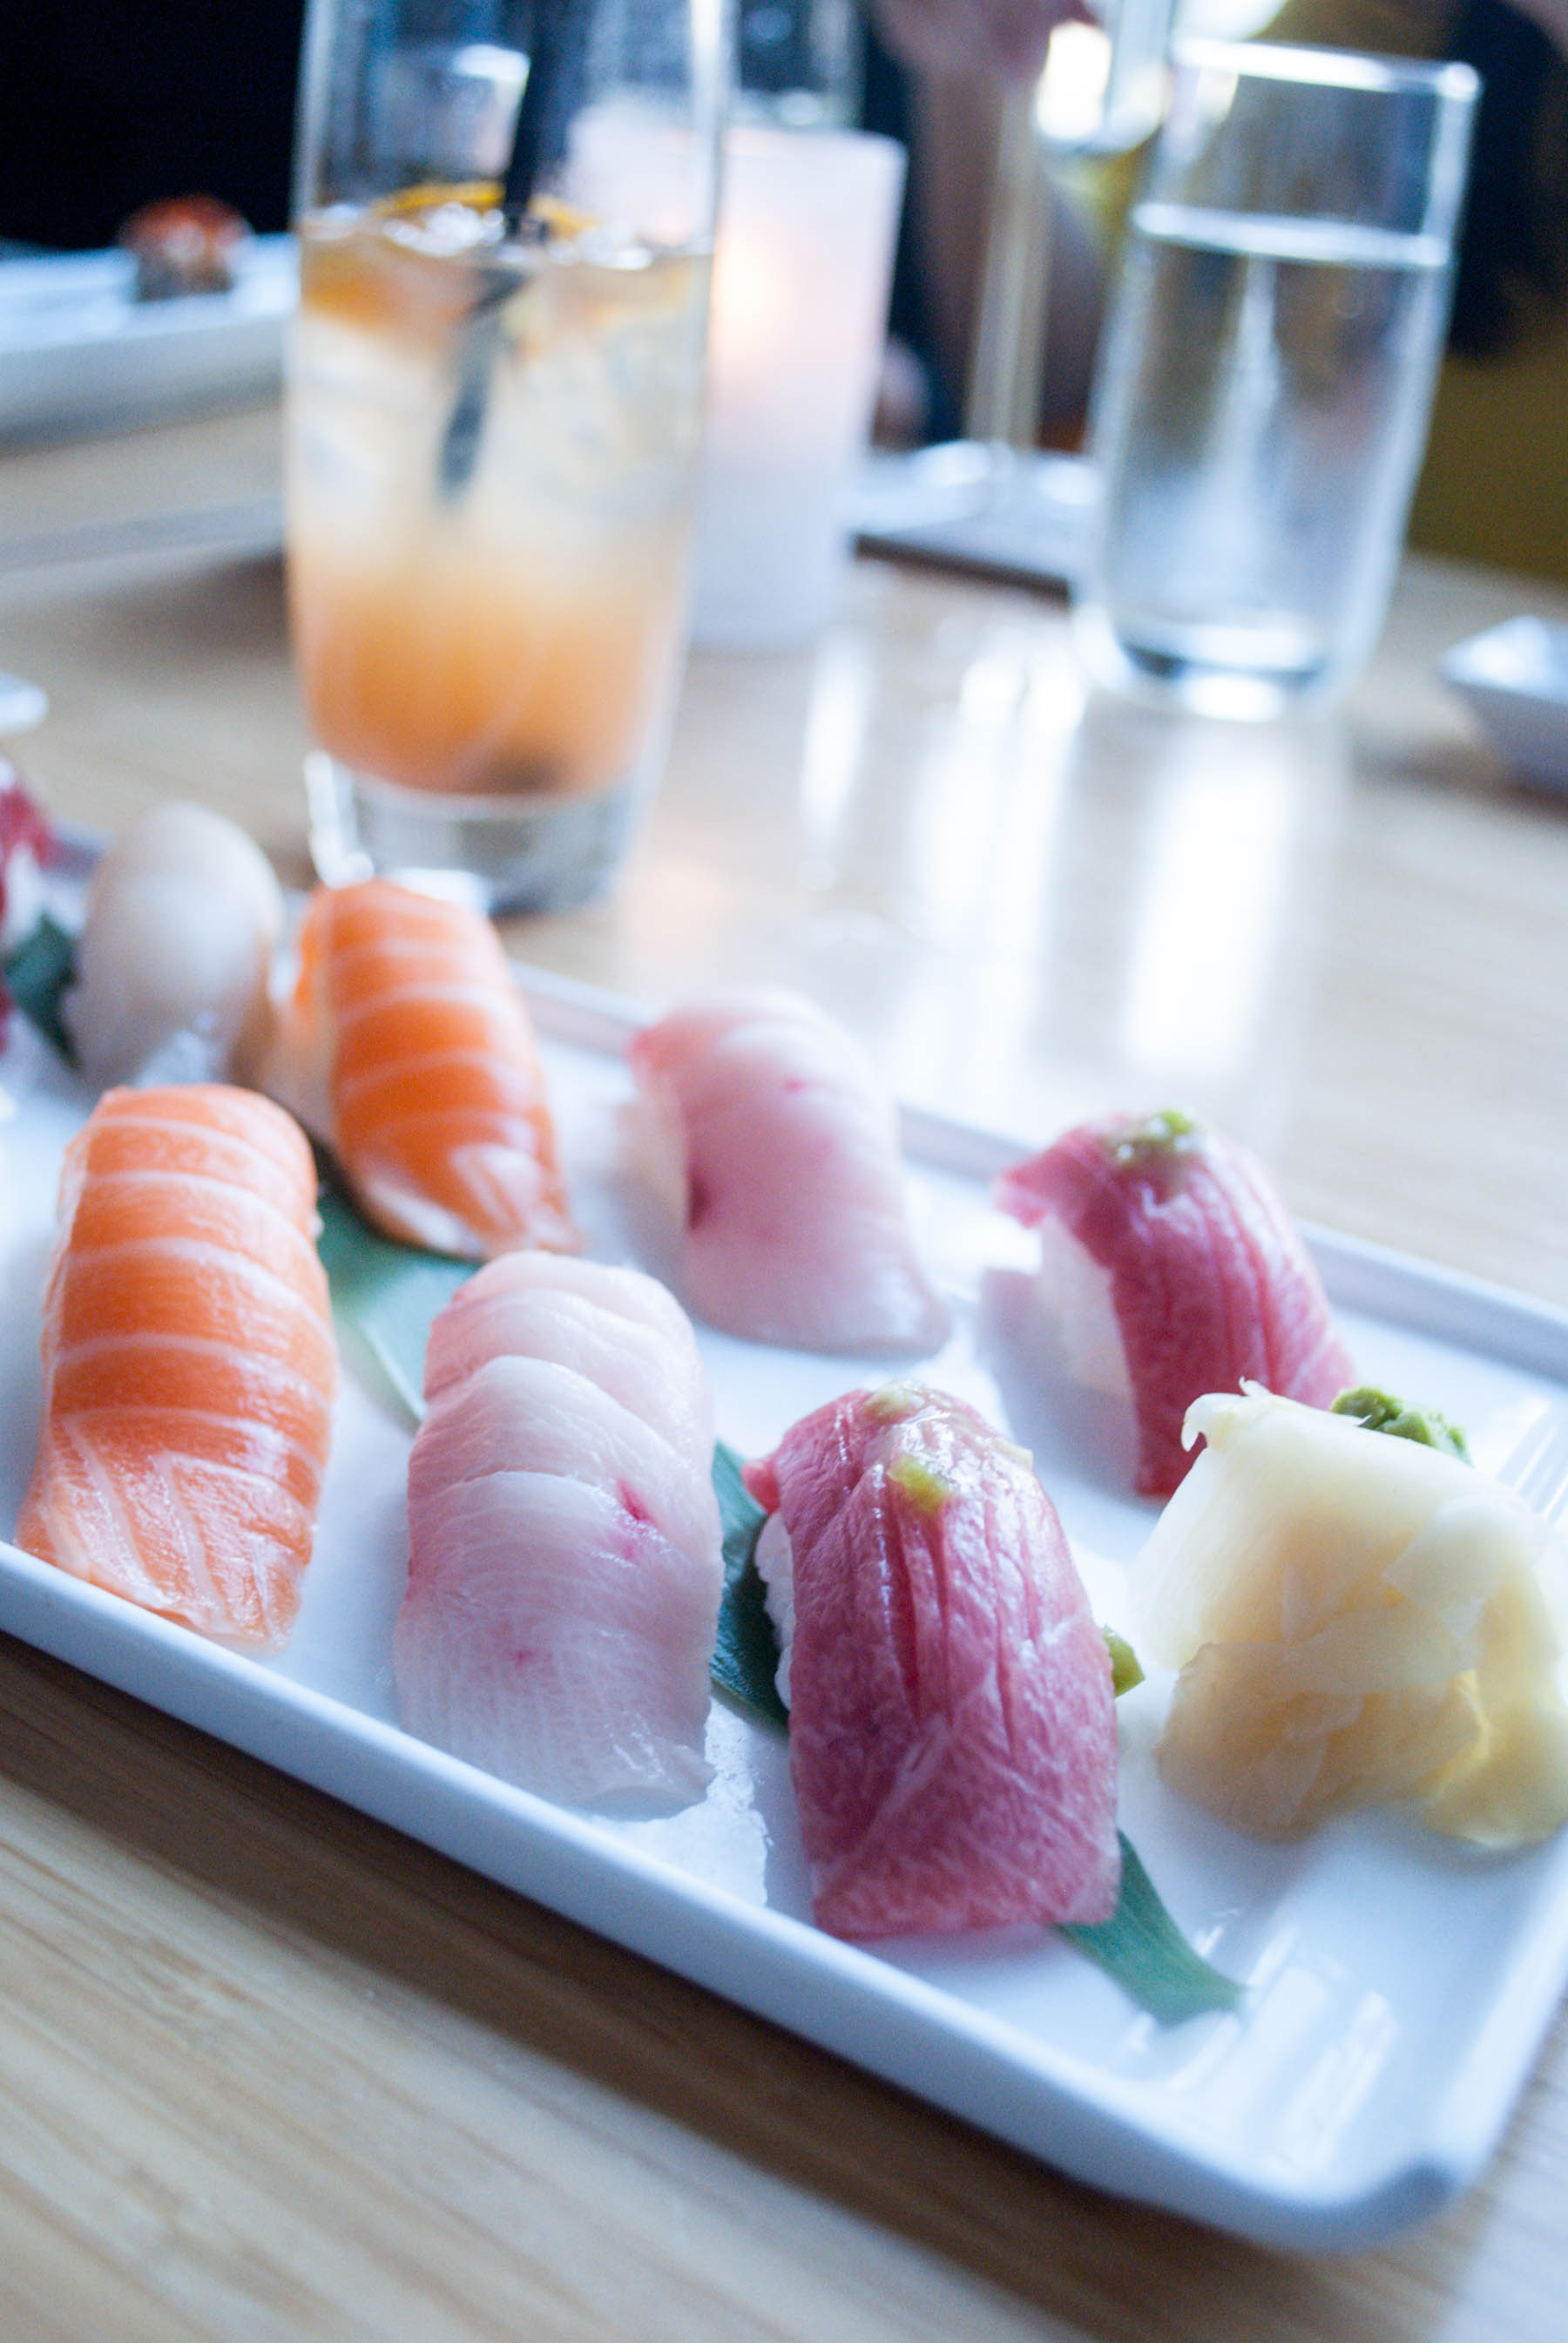 Bluefins Sushi & Sake Bar — Thinking of taking a Cape Cod vacation? Stay in Chatham, Massachusetts for a relaxing beach vacation with your family and friends. This travel guide will tell you how to get there, where to stay, what to do, and what to eat!